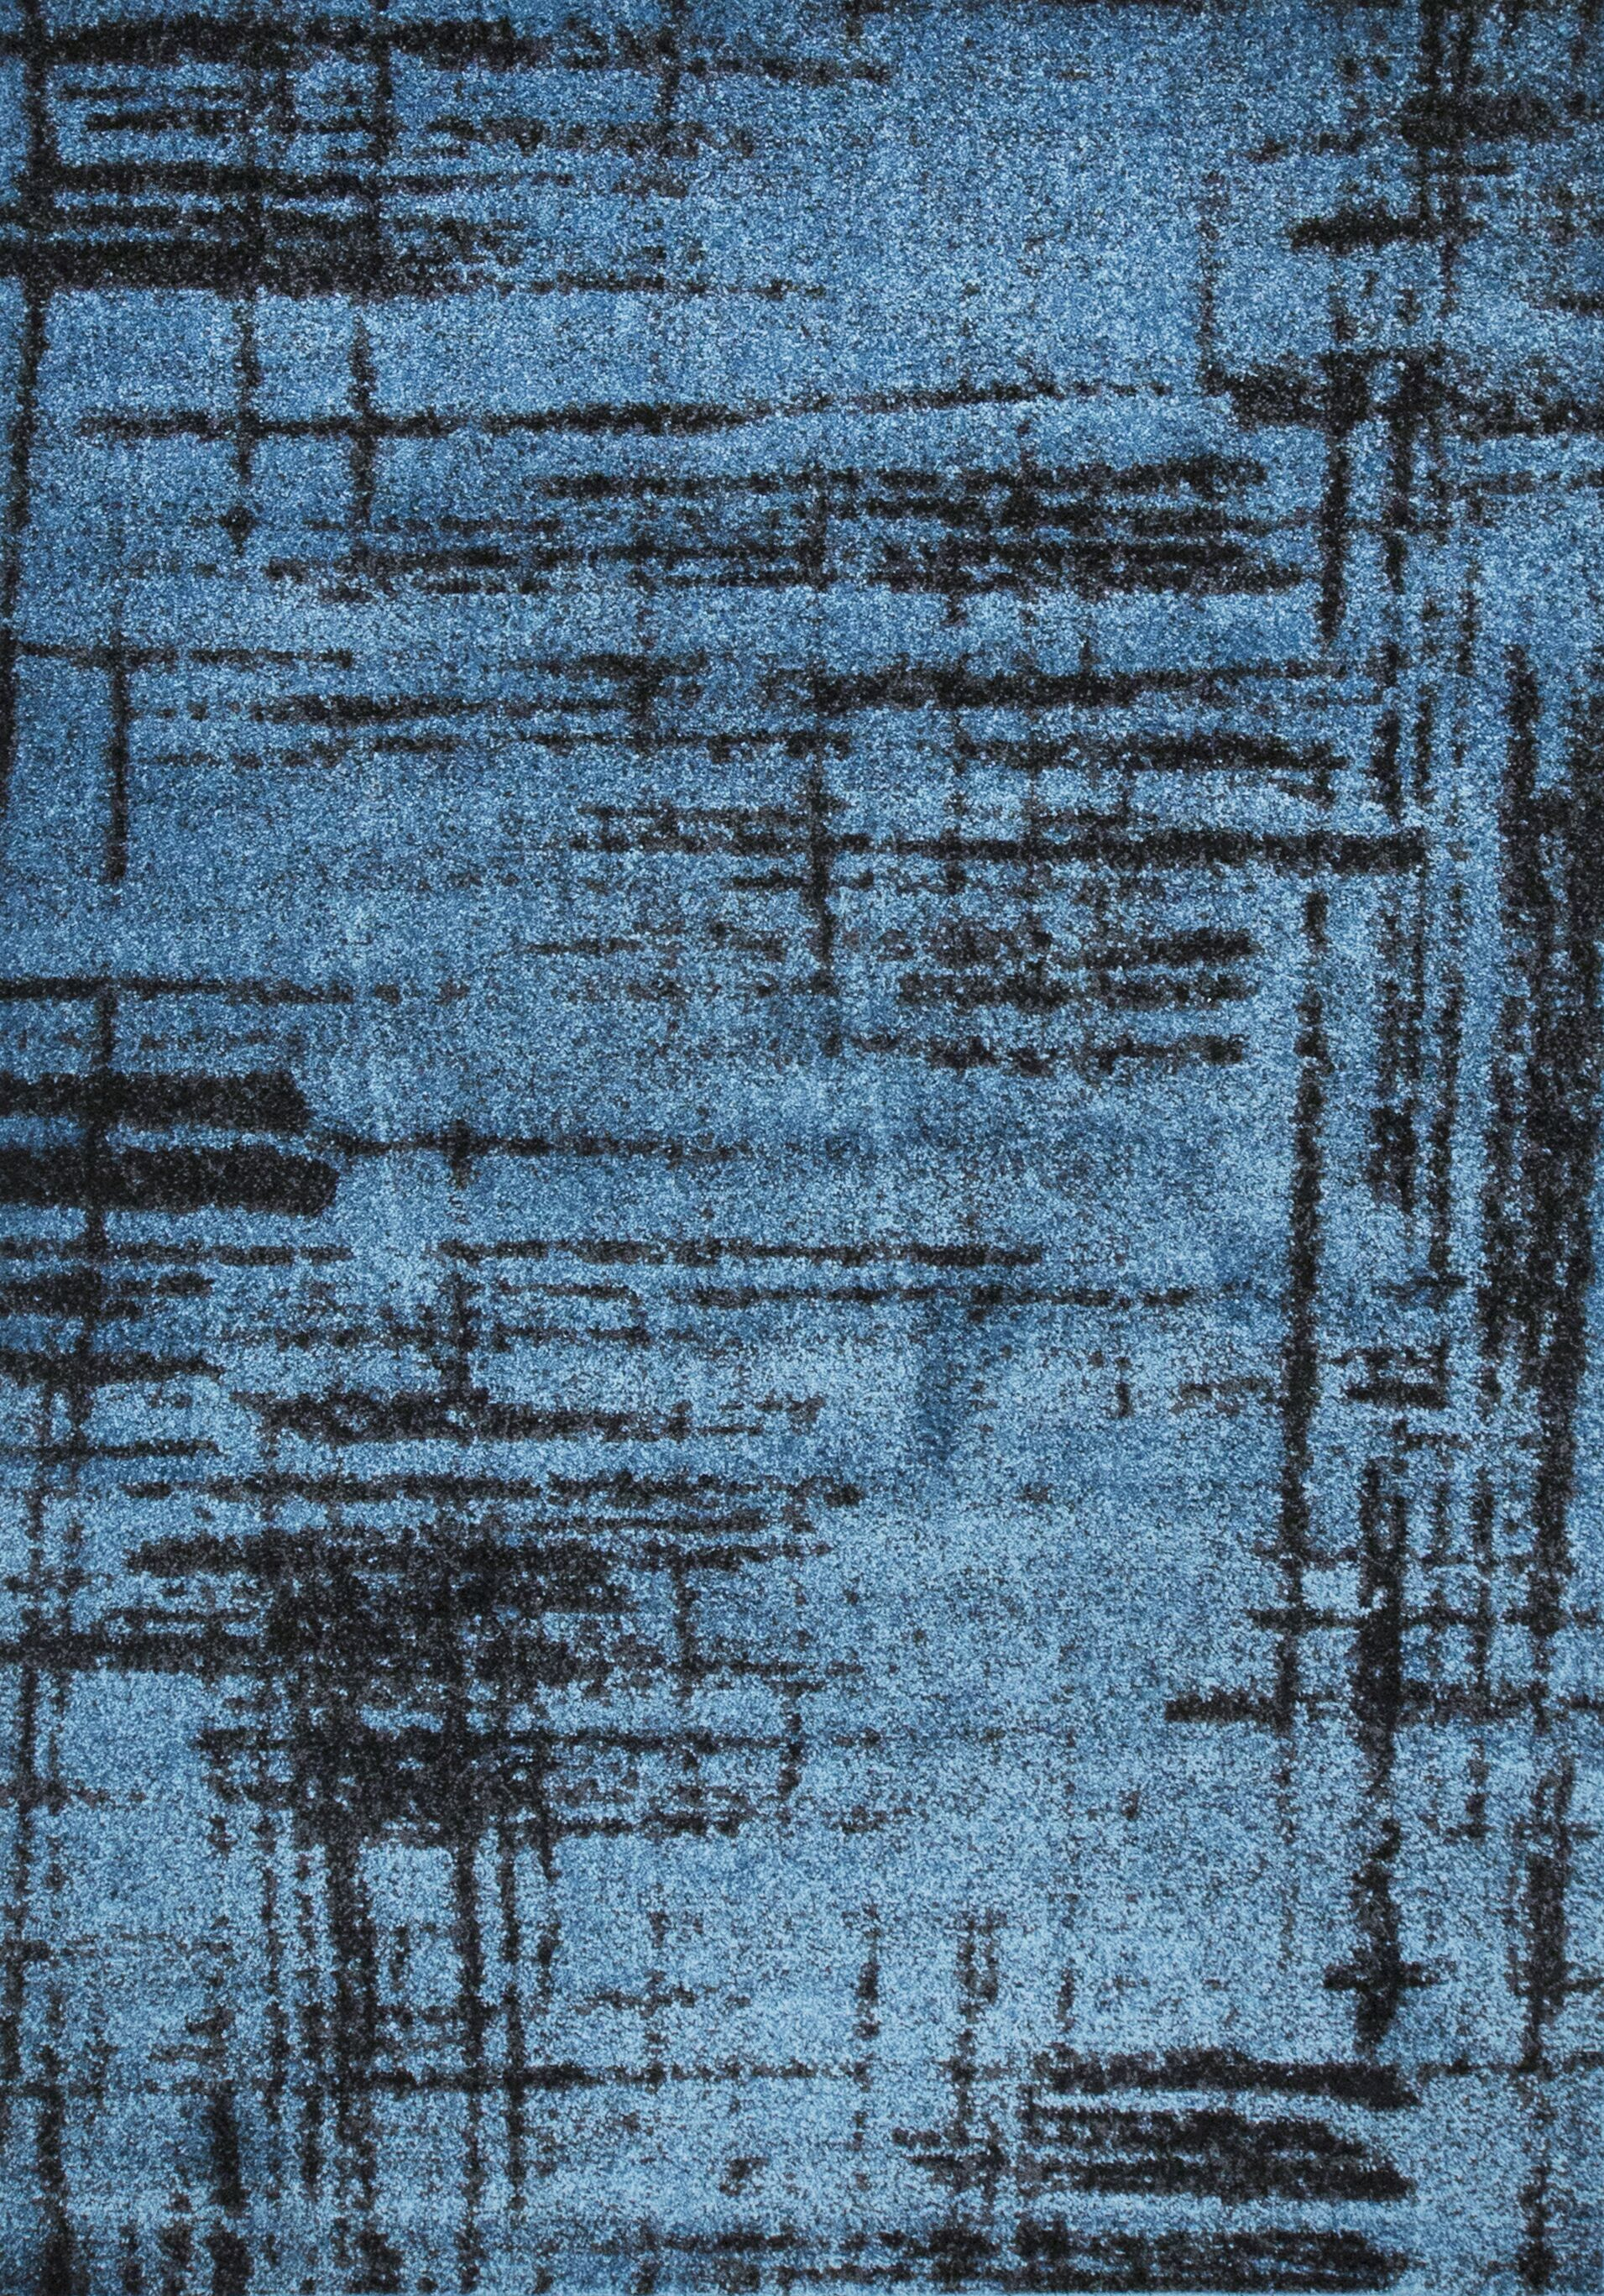 Graze Plain Blue/Gray/Black Area Rug Rug Size: 5' x 7'5